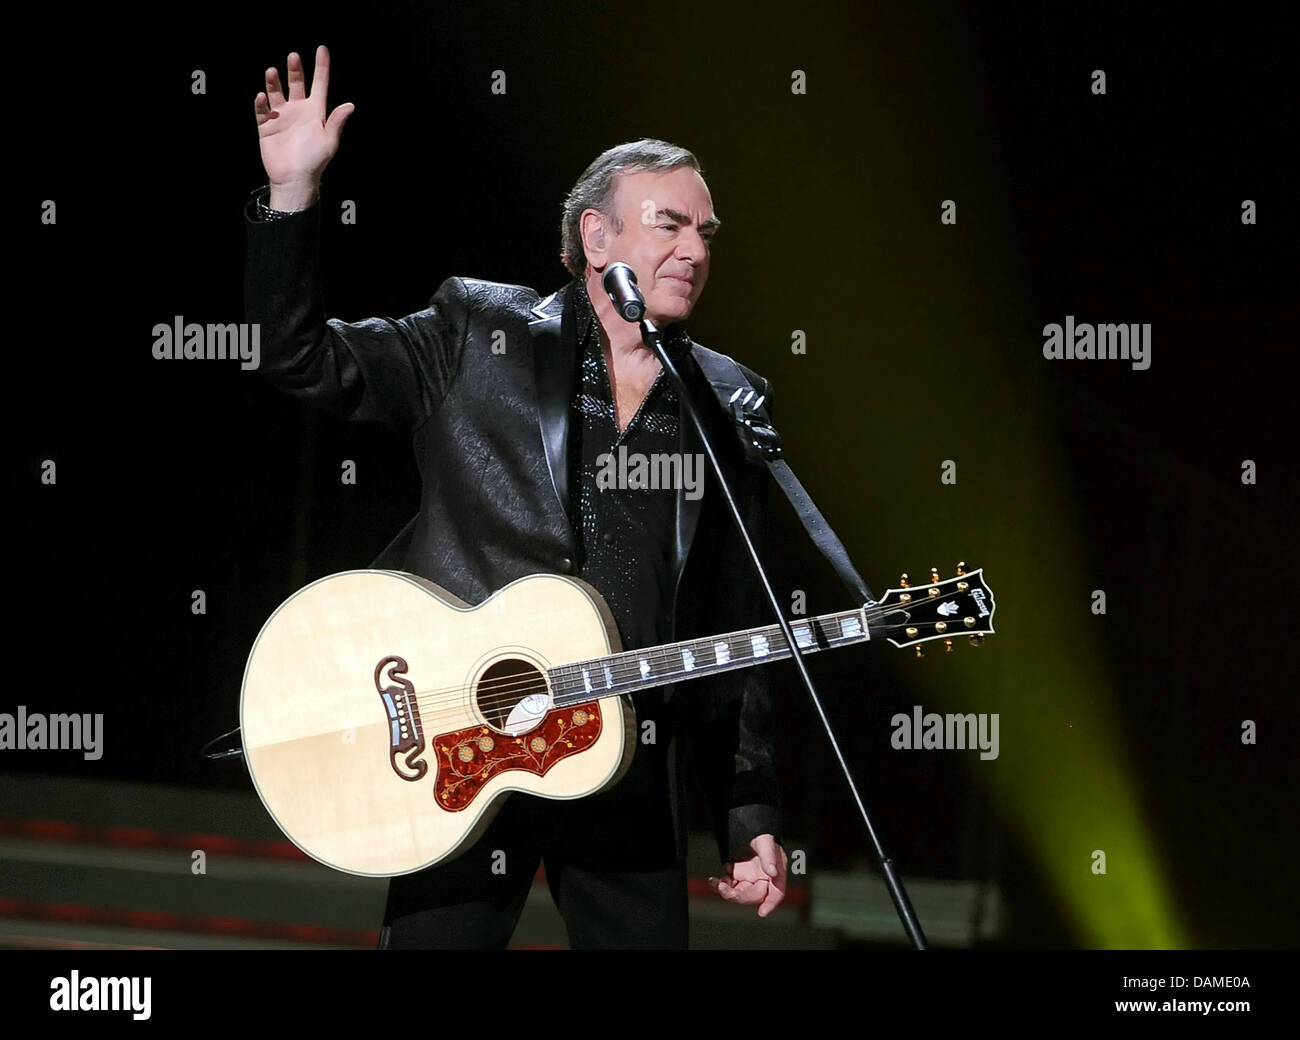 park usa sep at stock louis zuma deslover michael illinois music mike festival douglas musician daniel live credit news photo alamy during riot in d chicago diamond fest wire